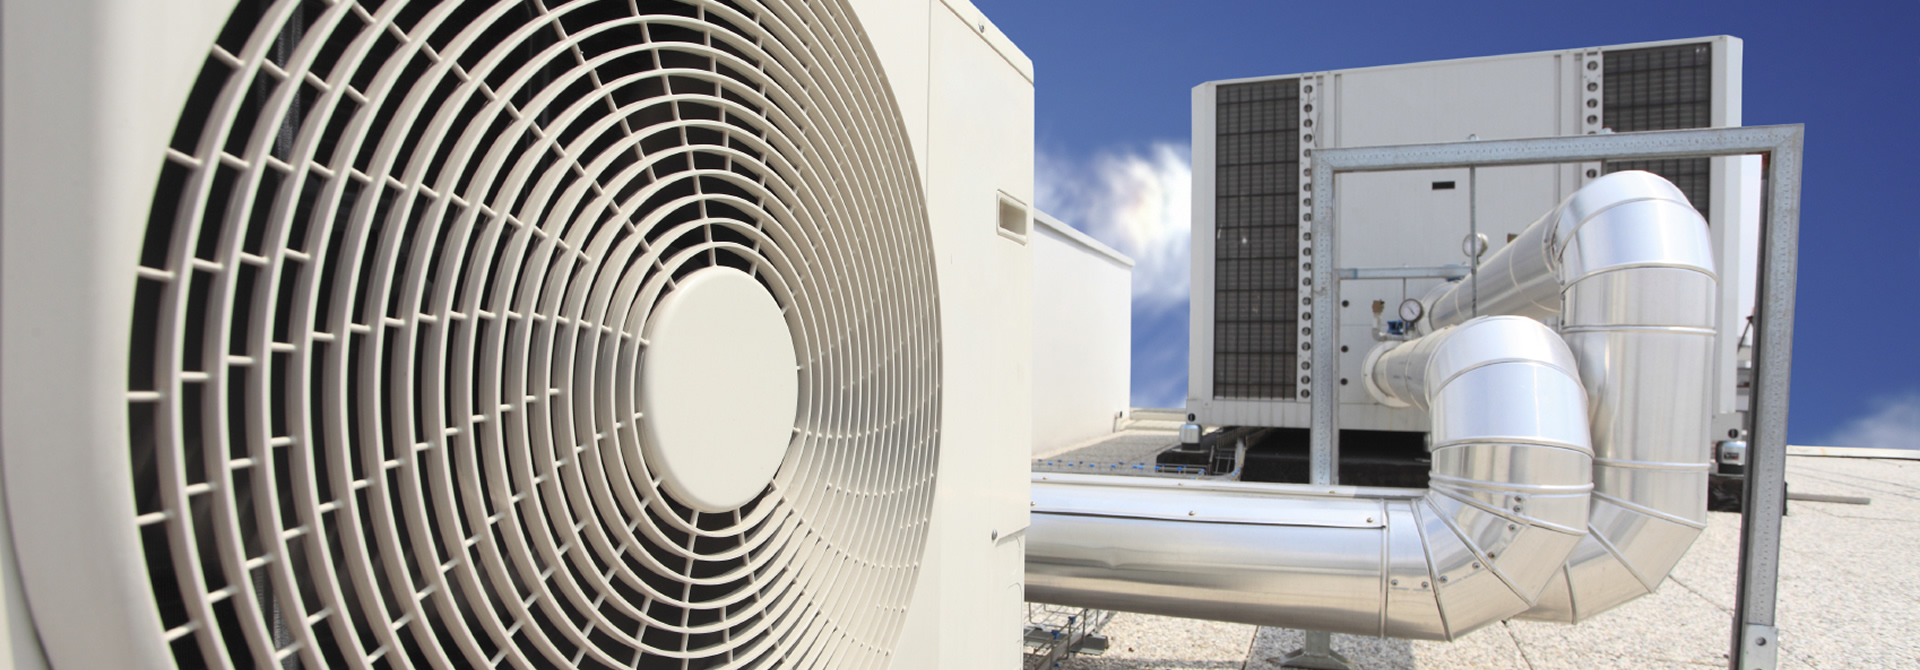 commercial hvac systems